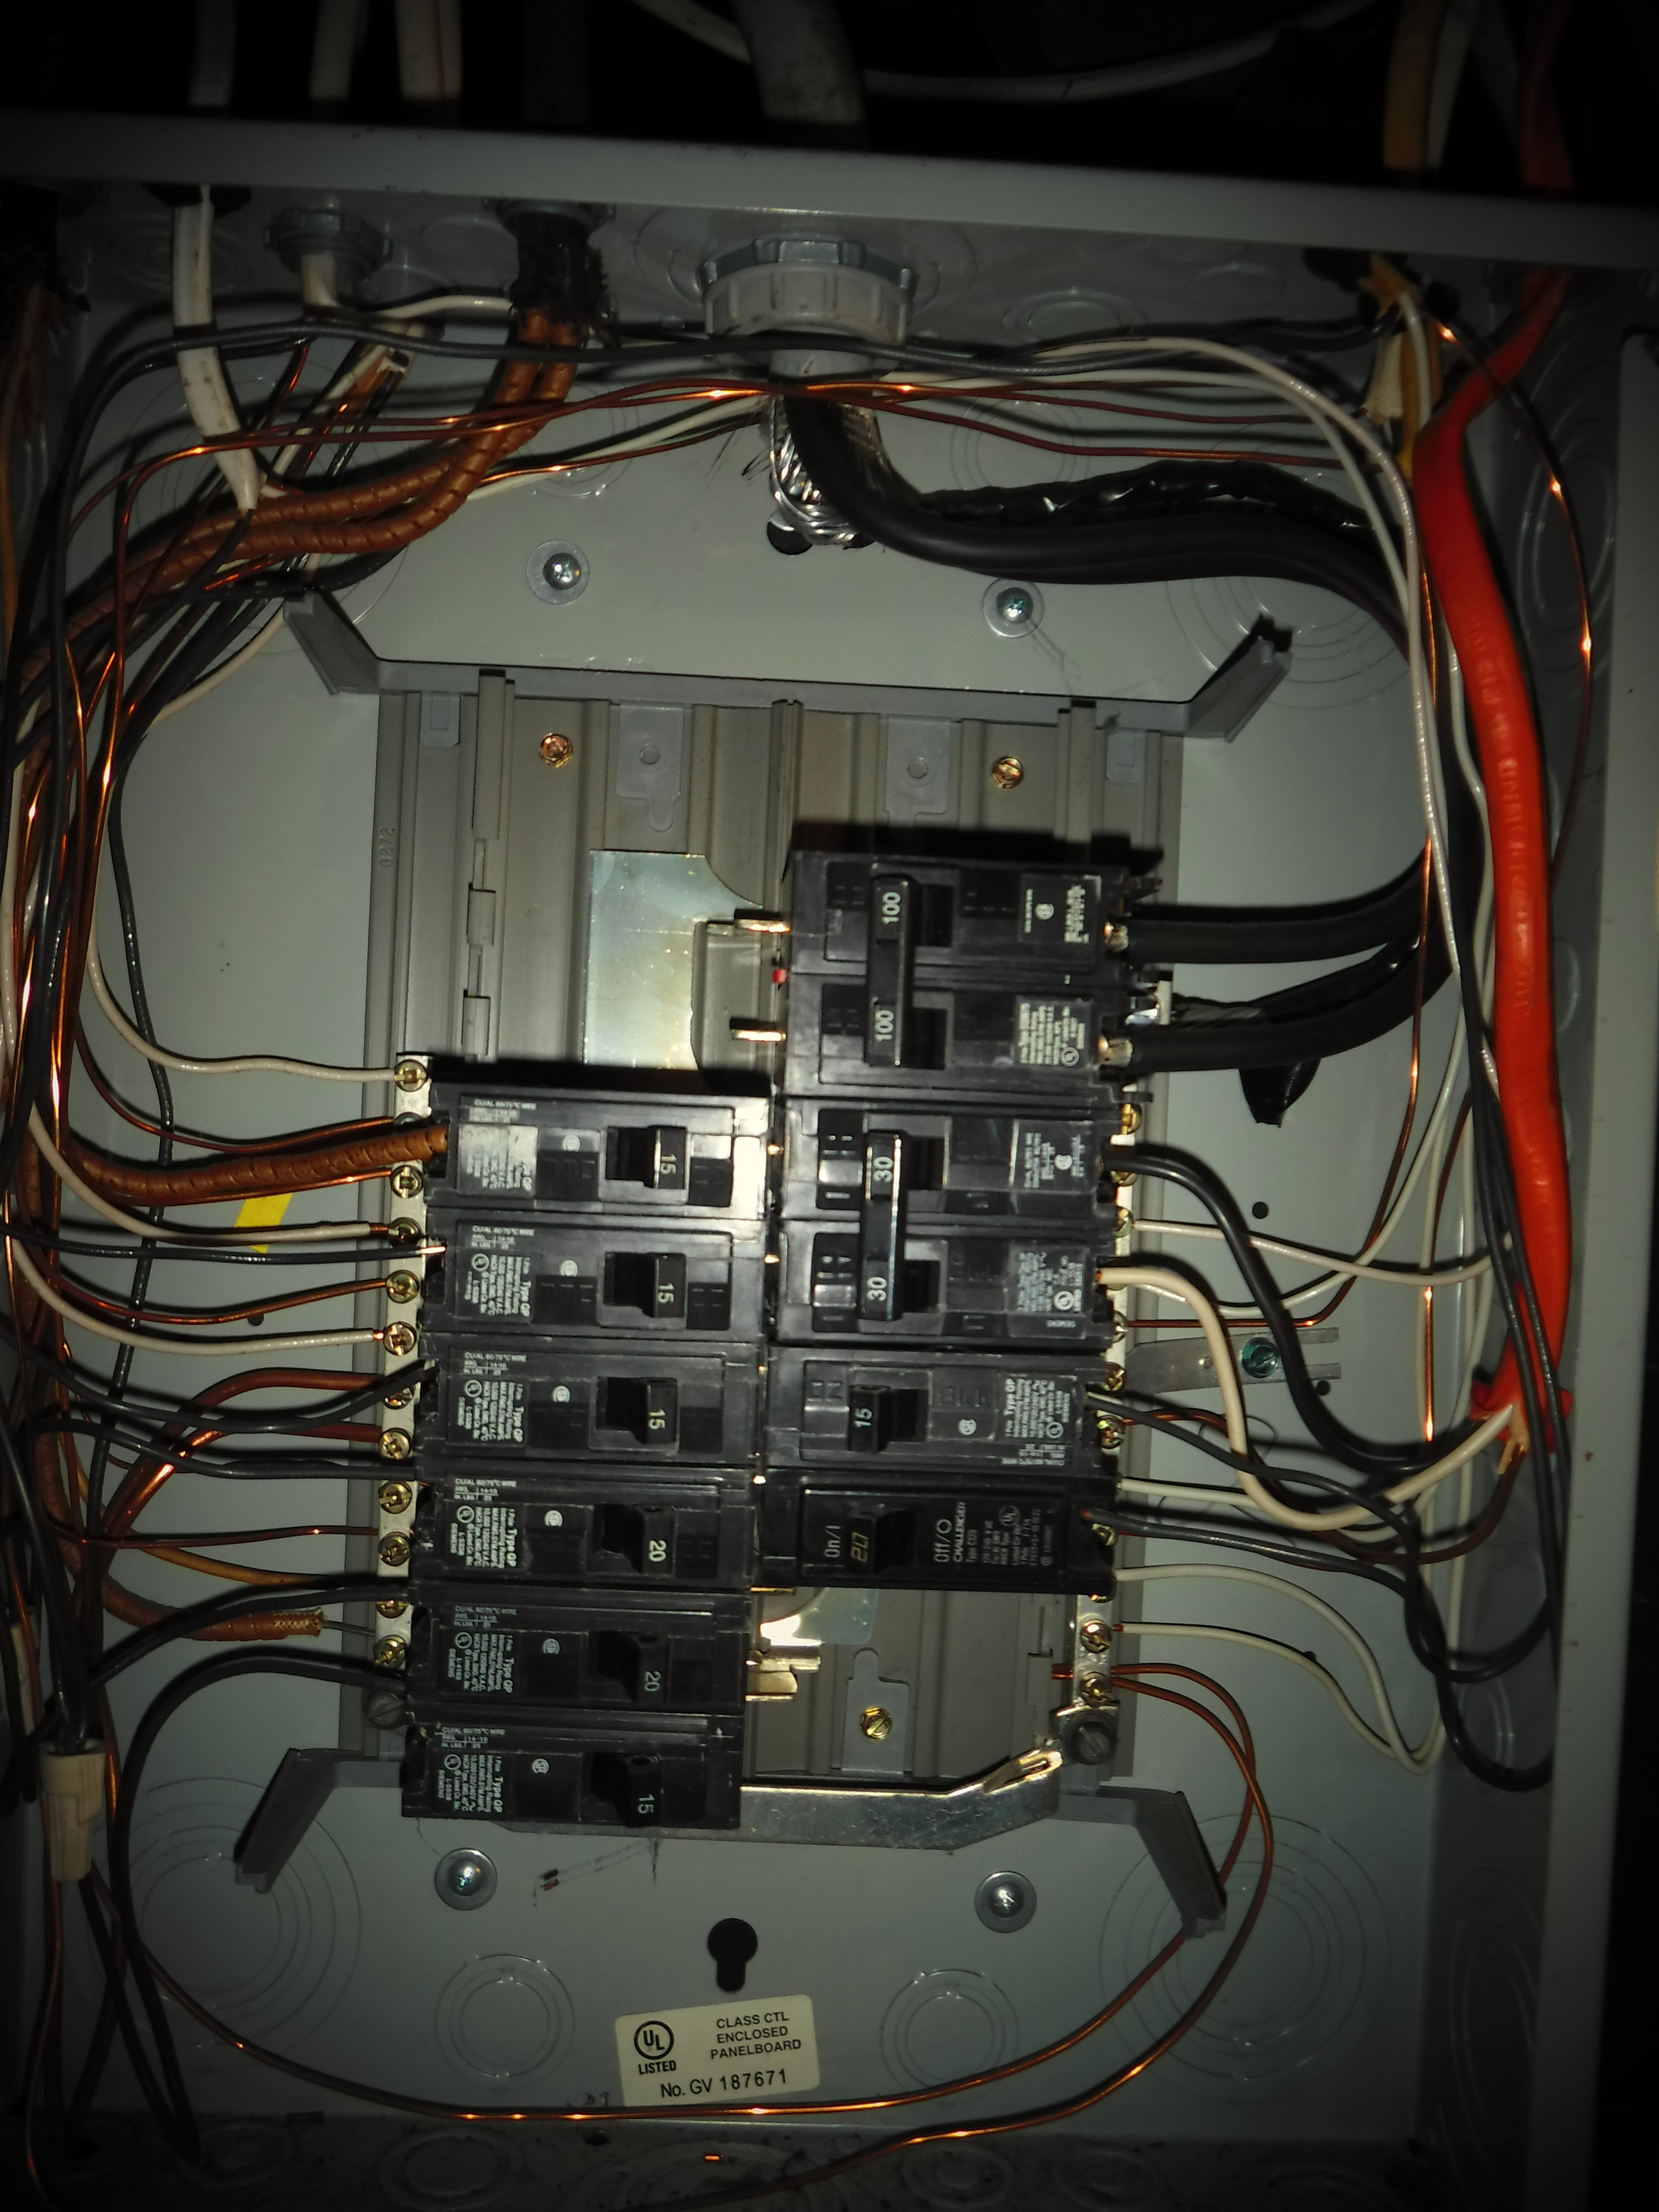 Electrical Panel Inspection Training Video Course Page 204 Arc Fault Safety Advice For Homeowners Home Inspectors Quotelectrical Videoquot